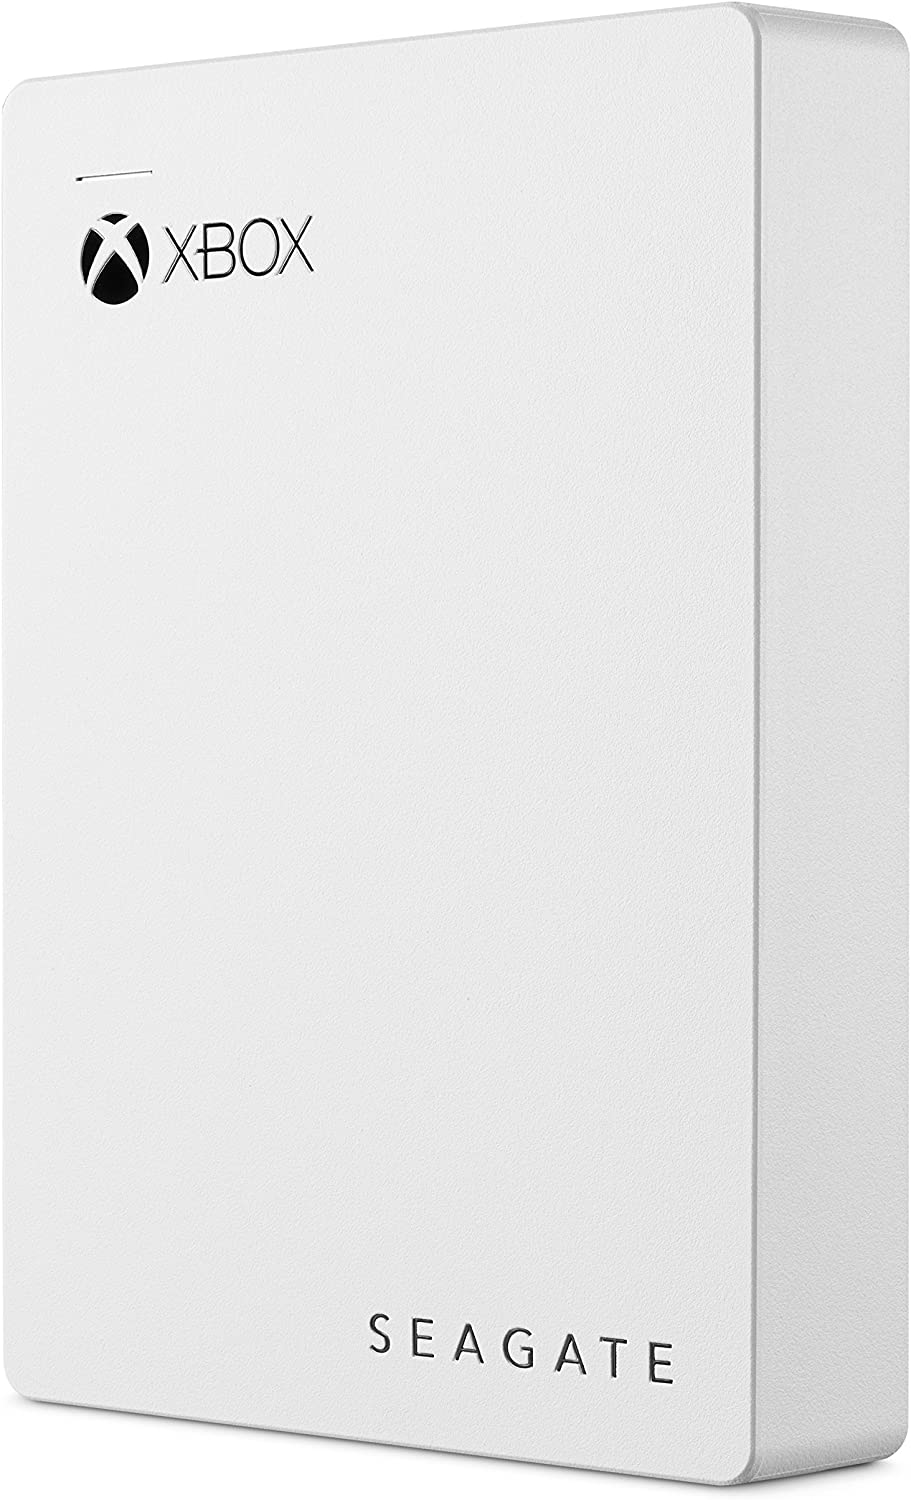 Seagate Game Drive For Xbox 4TB External Hard Drive Portable HDD, USB 3.0 – White, Designed For Xbox One, 2 Month Xbox Game Pass Membership, 1 Year Rescue Service (STEA4000407)